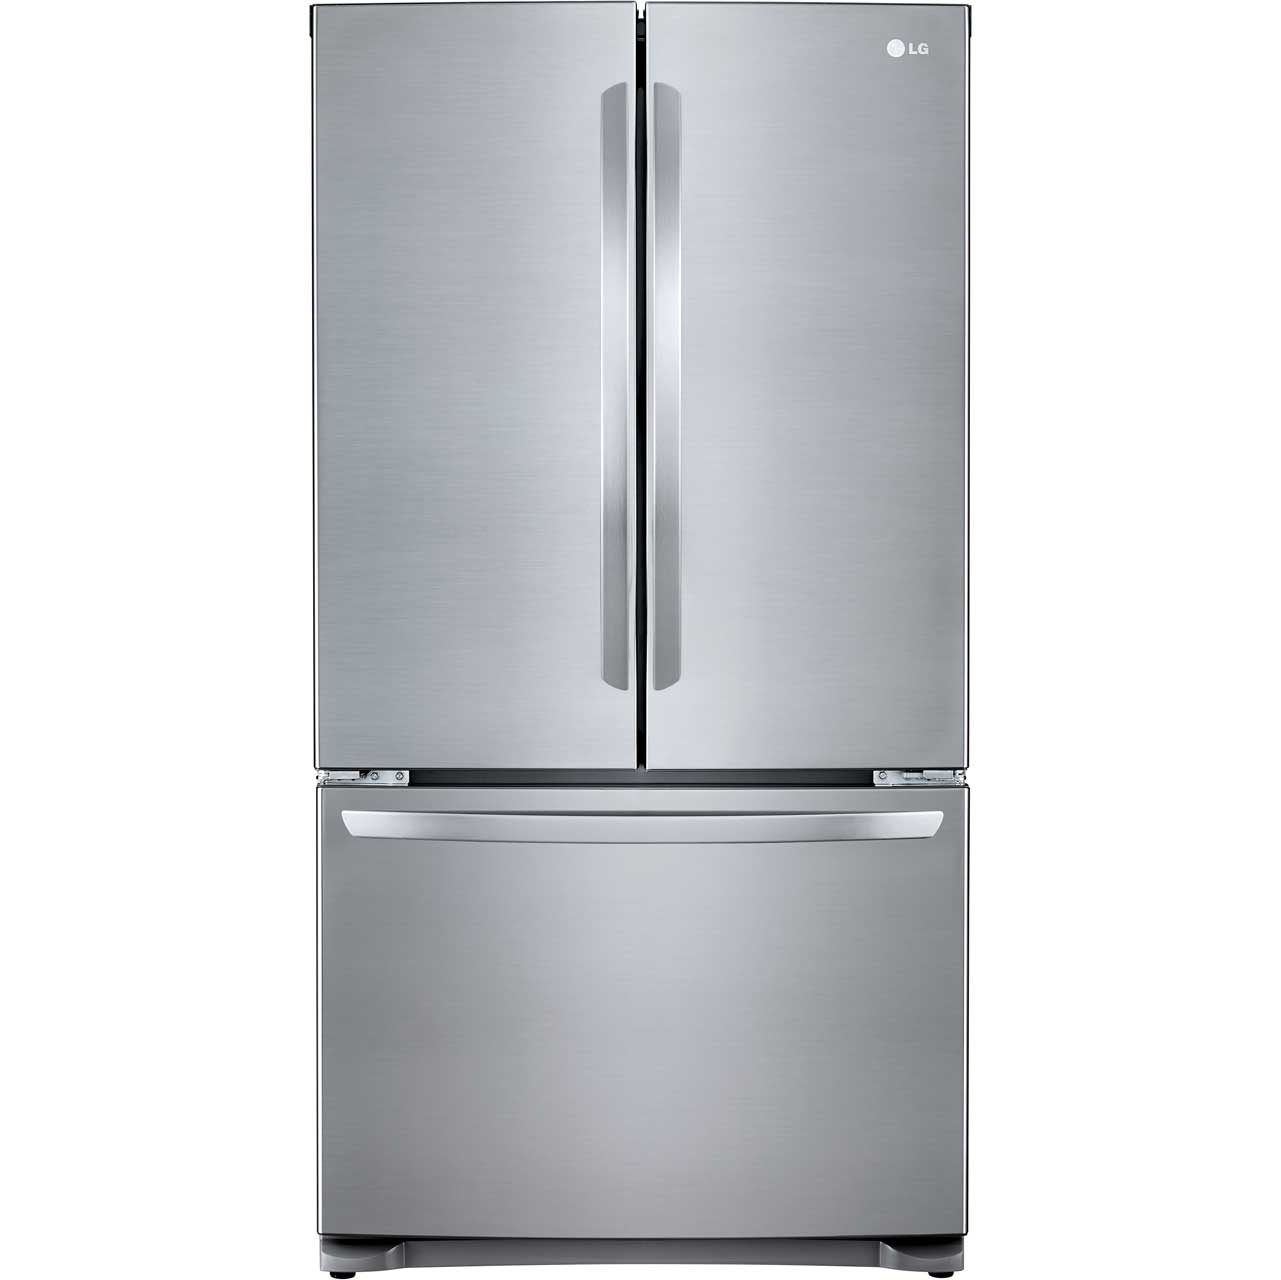 LG GMB714PZXV Free Standing American Fridge Freezer in Stainless Steel